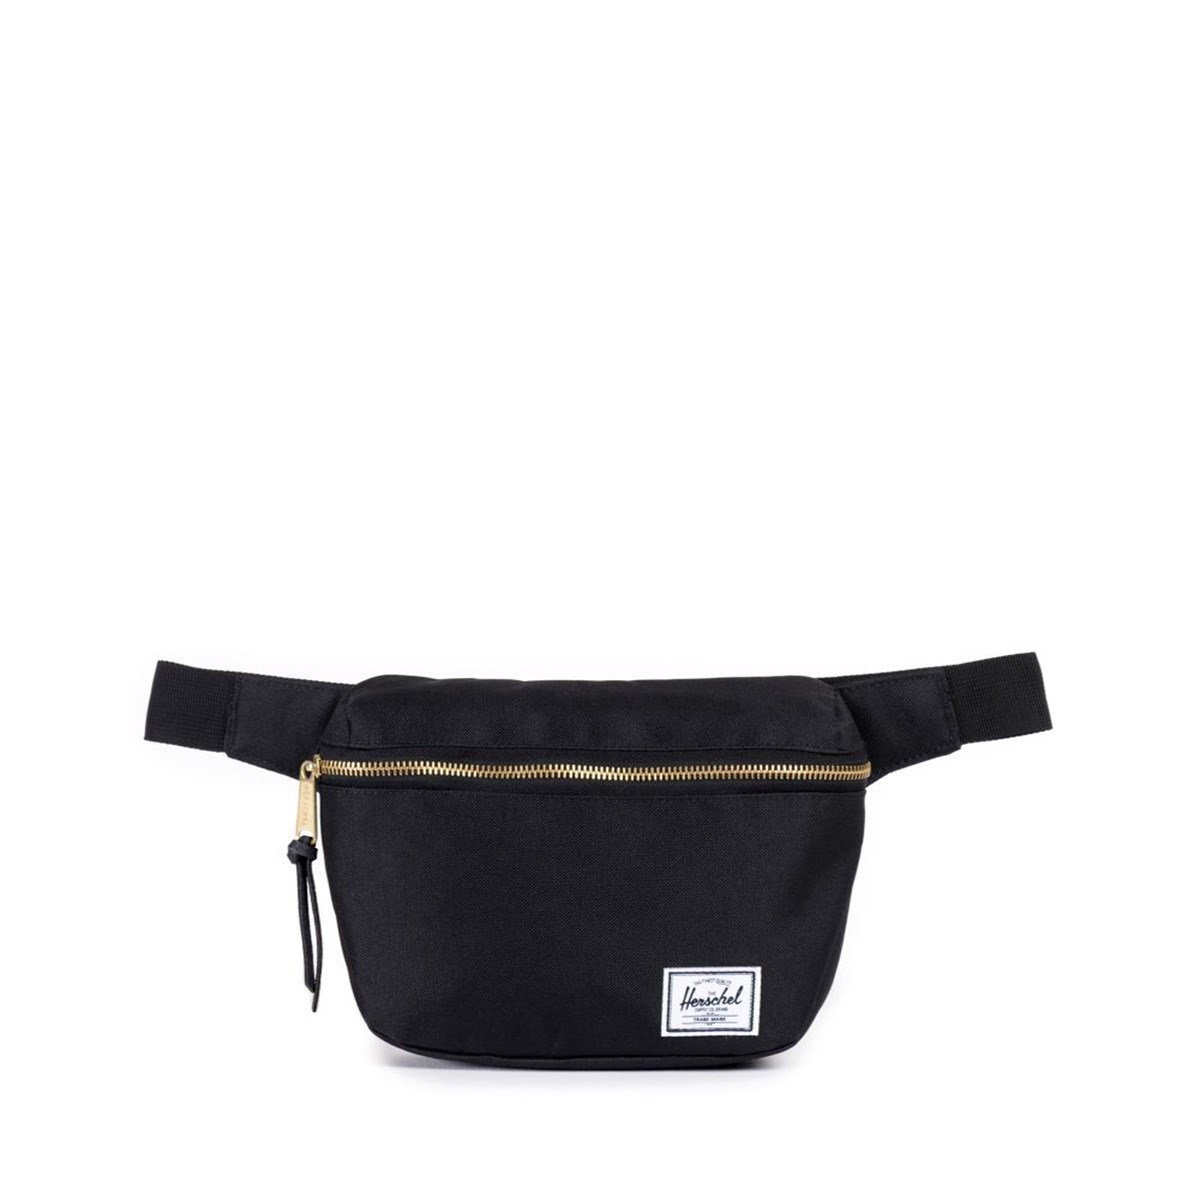 Fifteen Hip Bag in Black